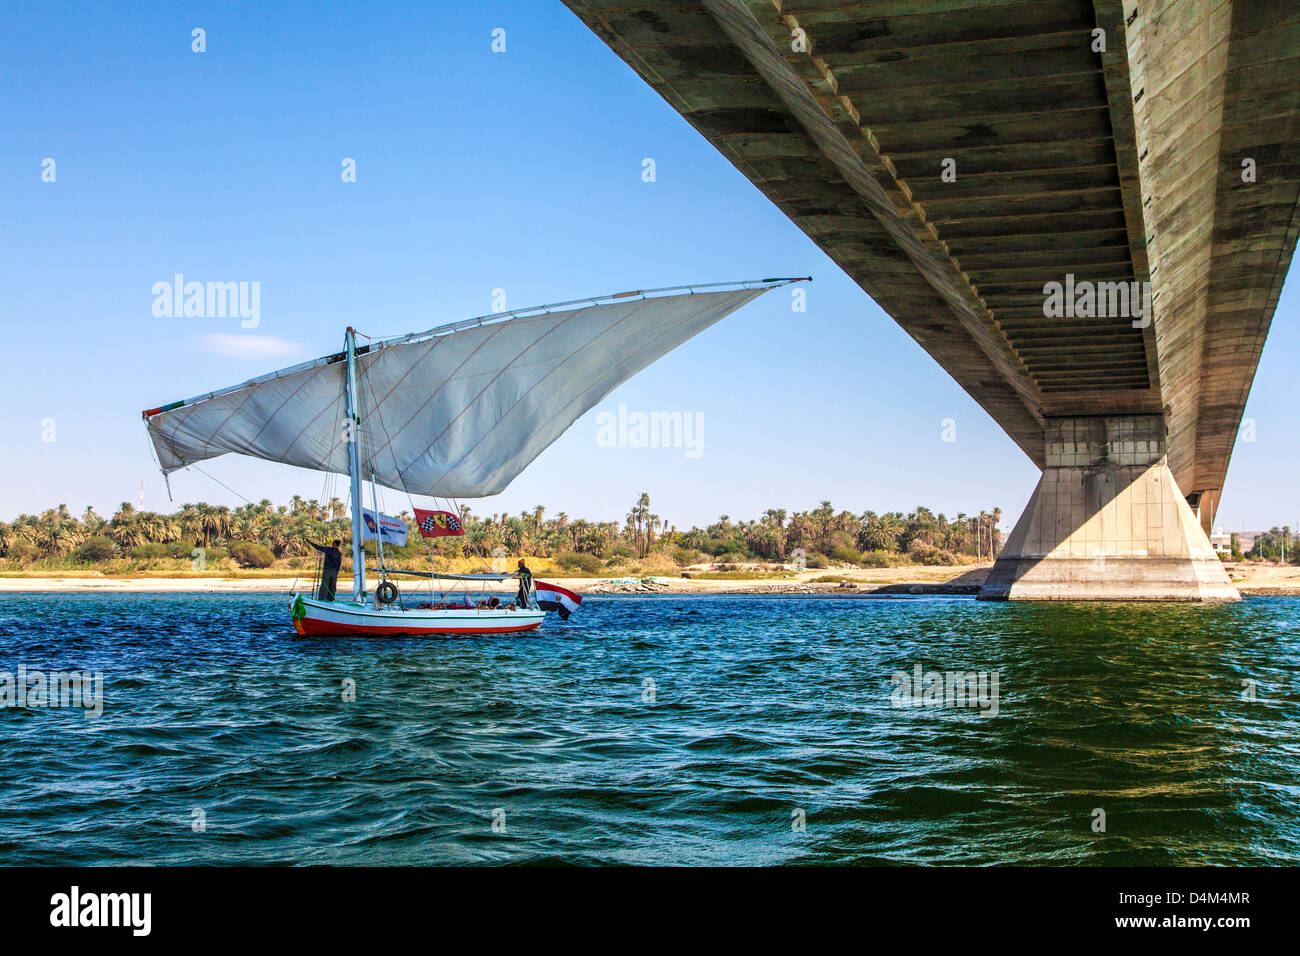 Tourist felucca swivels its main sail as it passes under the bridge at Aswan on the Nile, Egypt - Stock Image